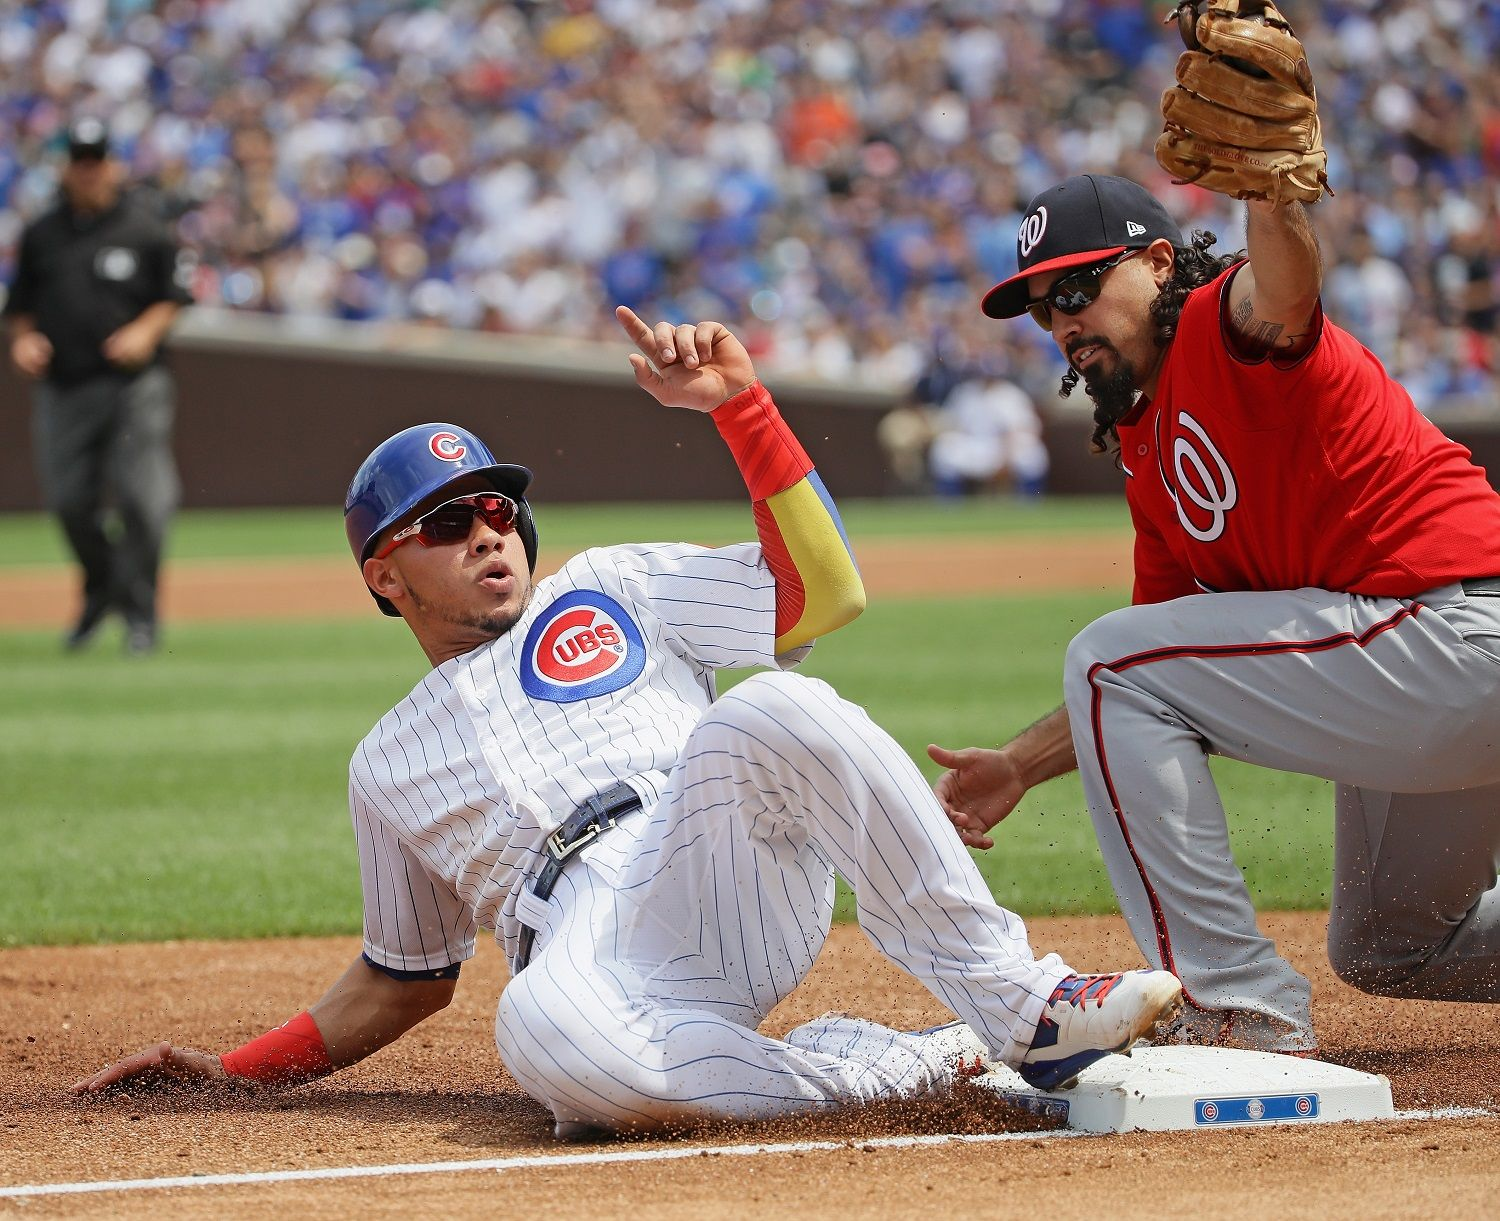 CHICAGO, IL - AUGUST 05:   Willson Contreras #40 of the Chicago Cubs is tagged out at third base by Anthony Rendon #6 of the Washington Nationals in the 1st inning at Wrigley Field on August 5, 2017 in Chicago, Illinois. (Photo by Jonathan Daniel/Getty Images)